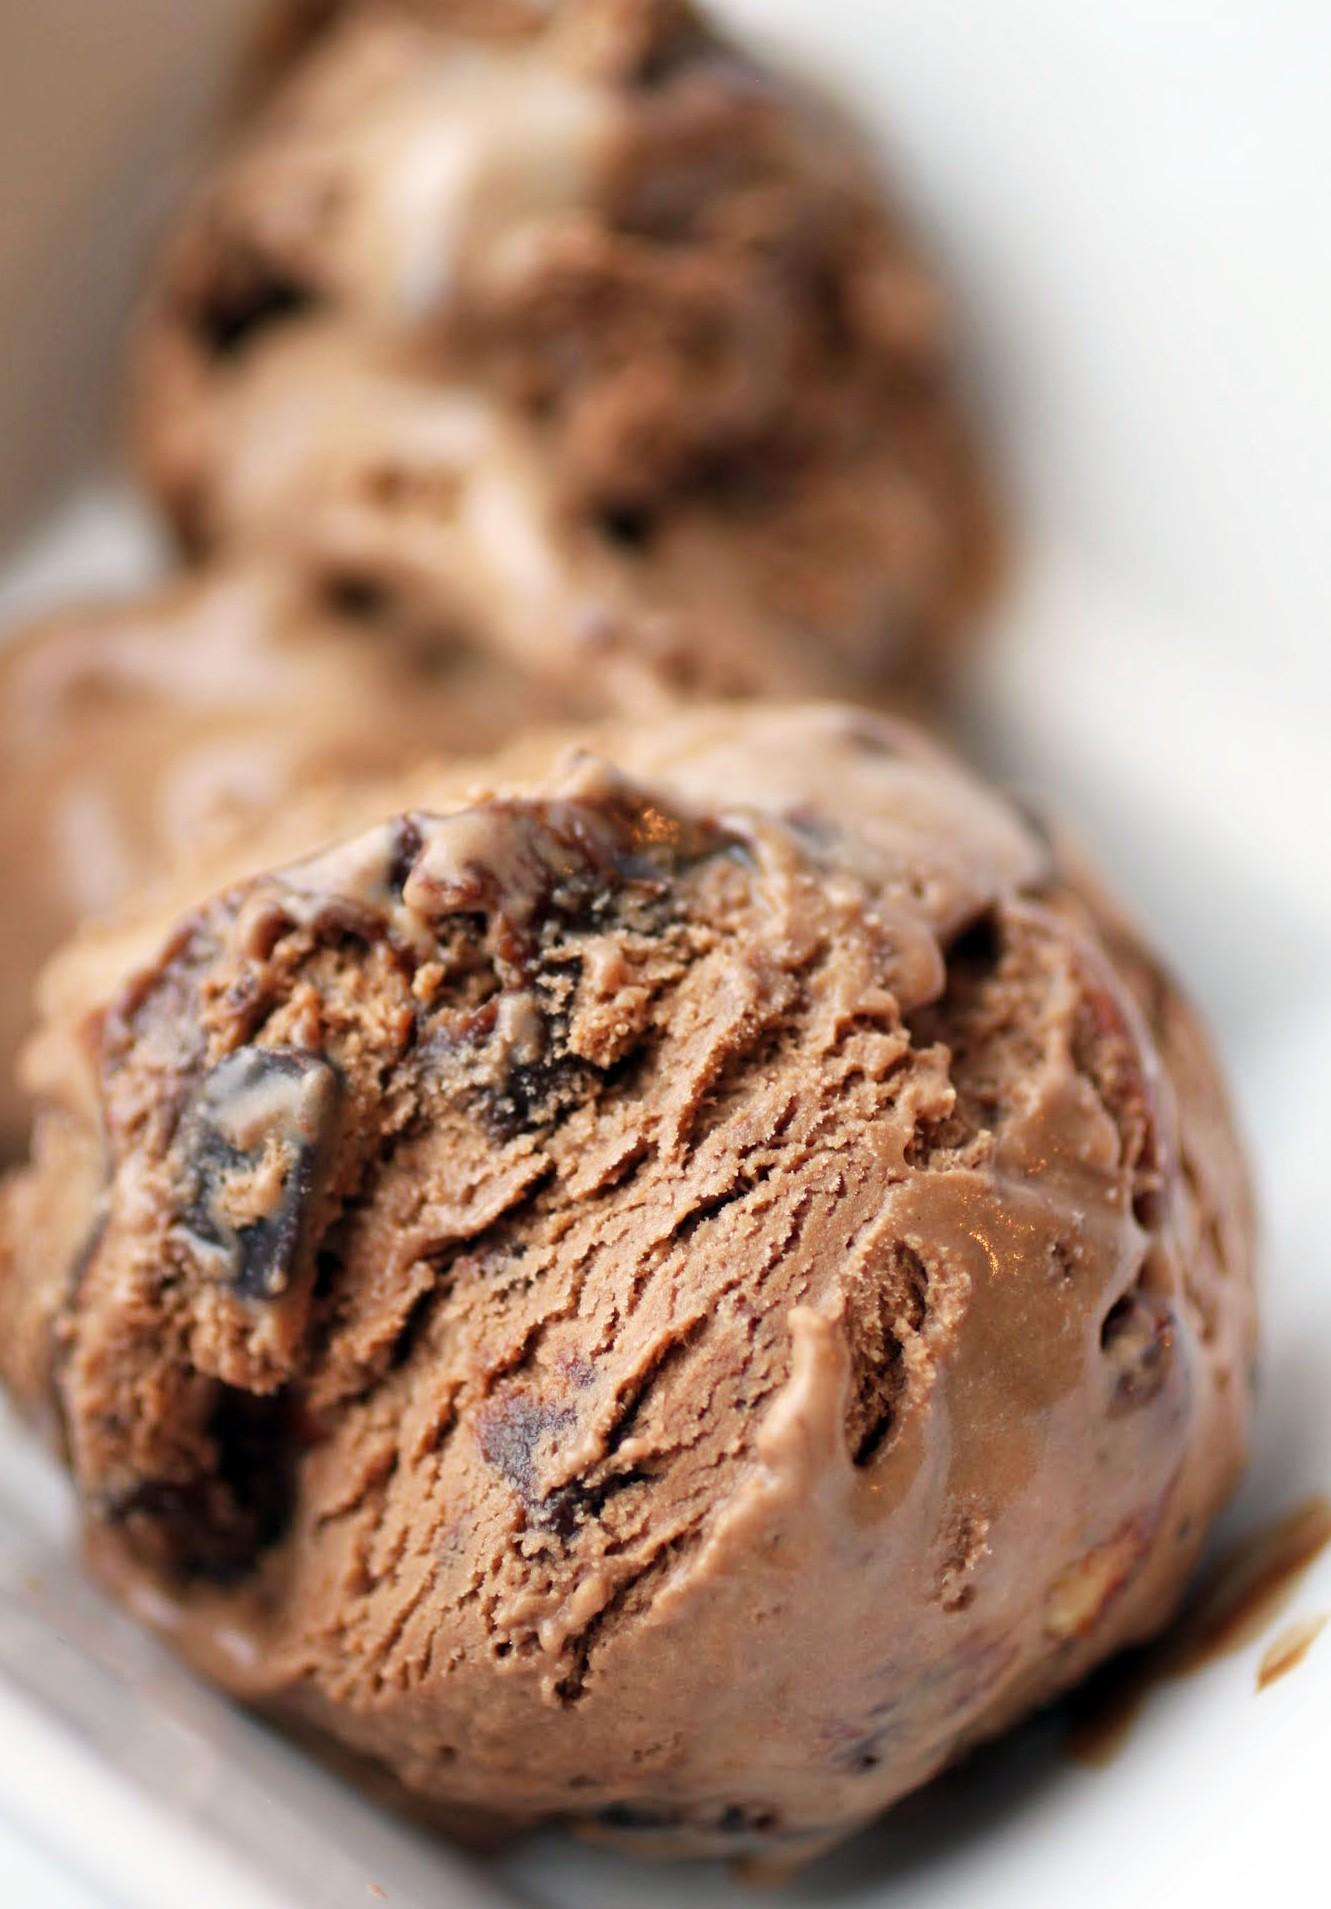 Mocha Almond Fudge Chunk Ice Cream